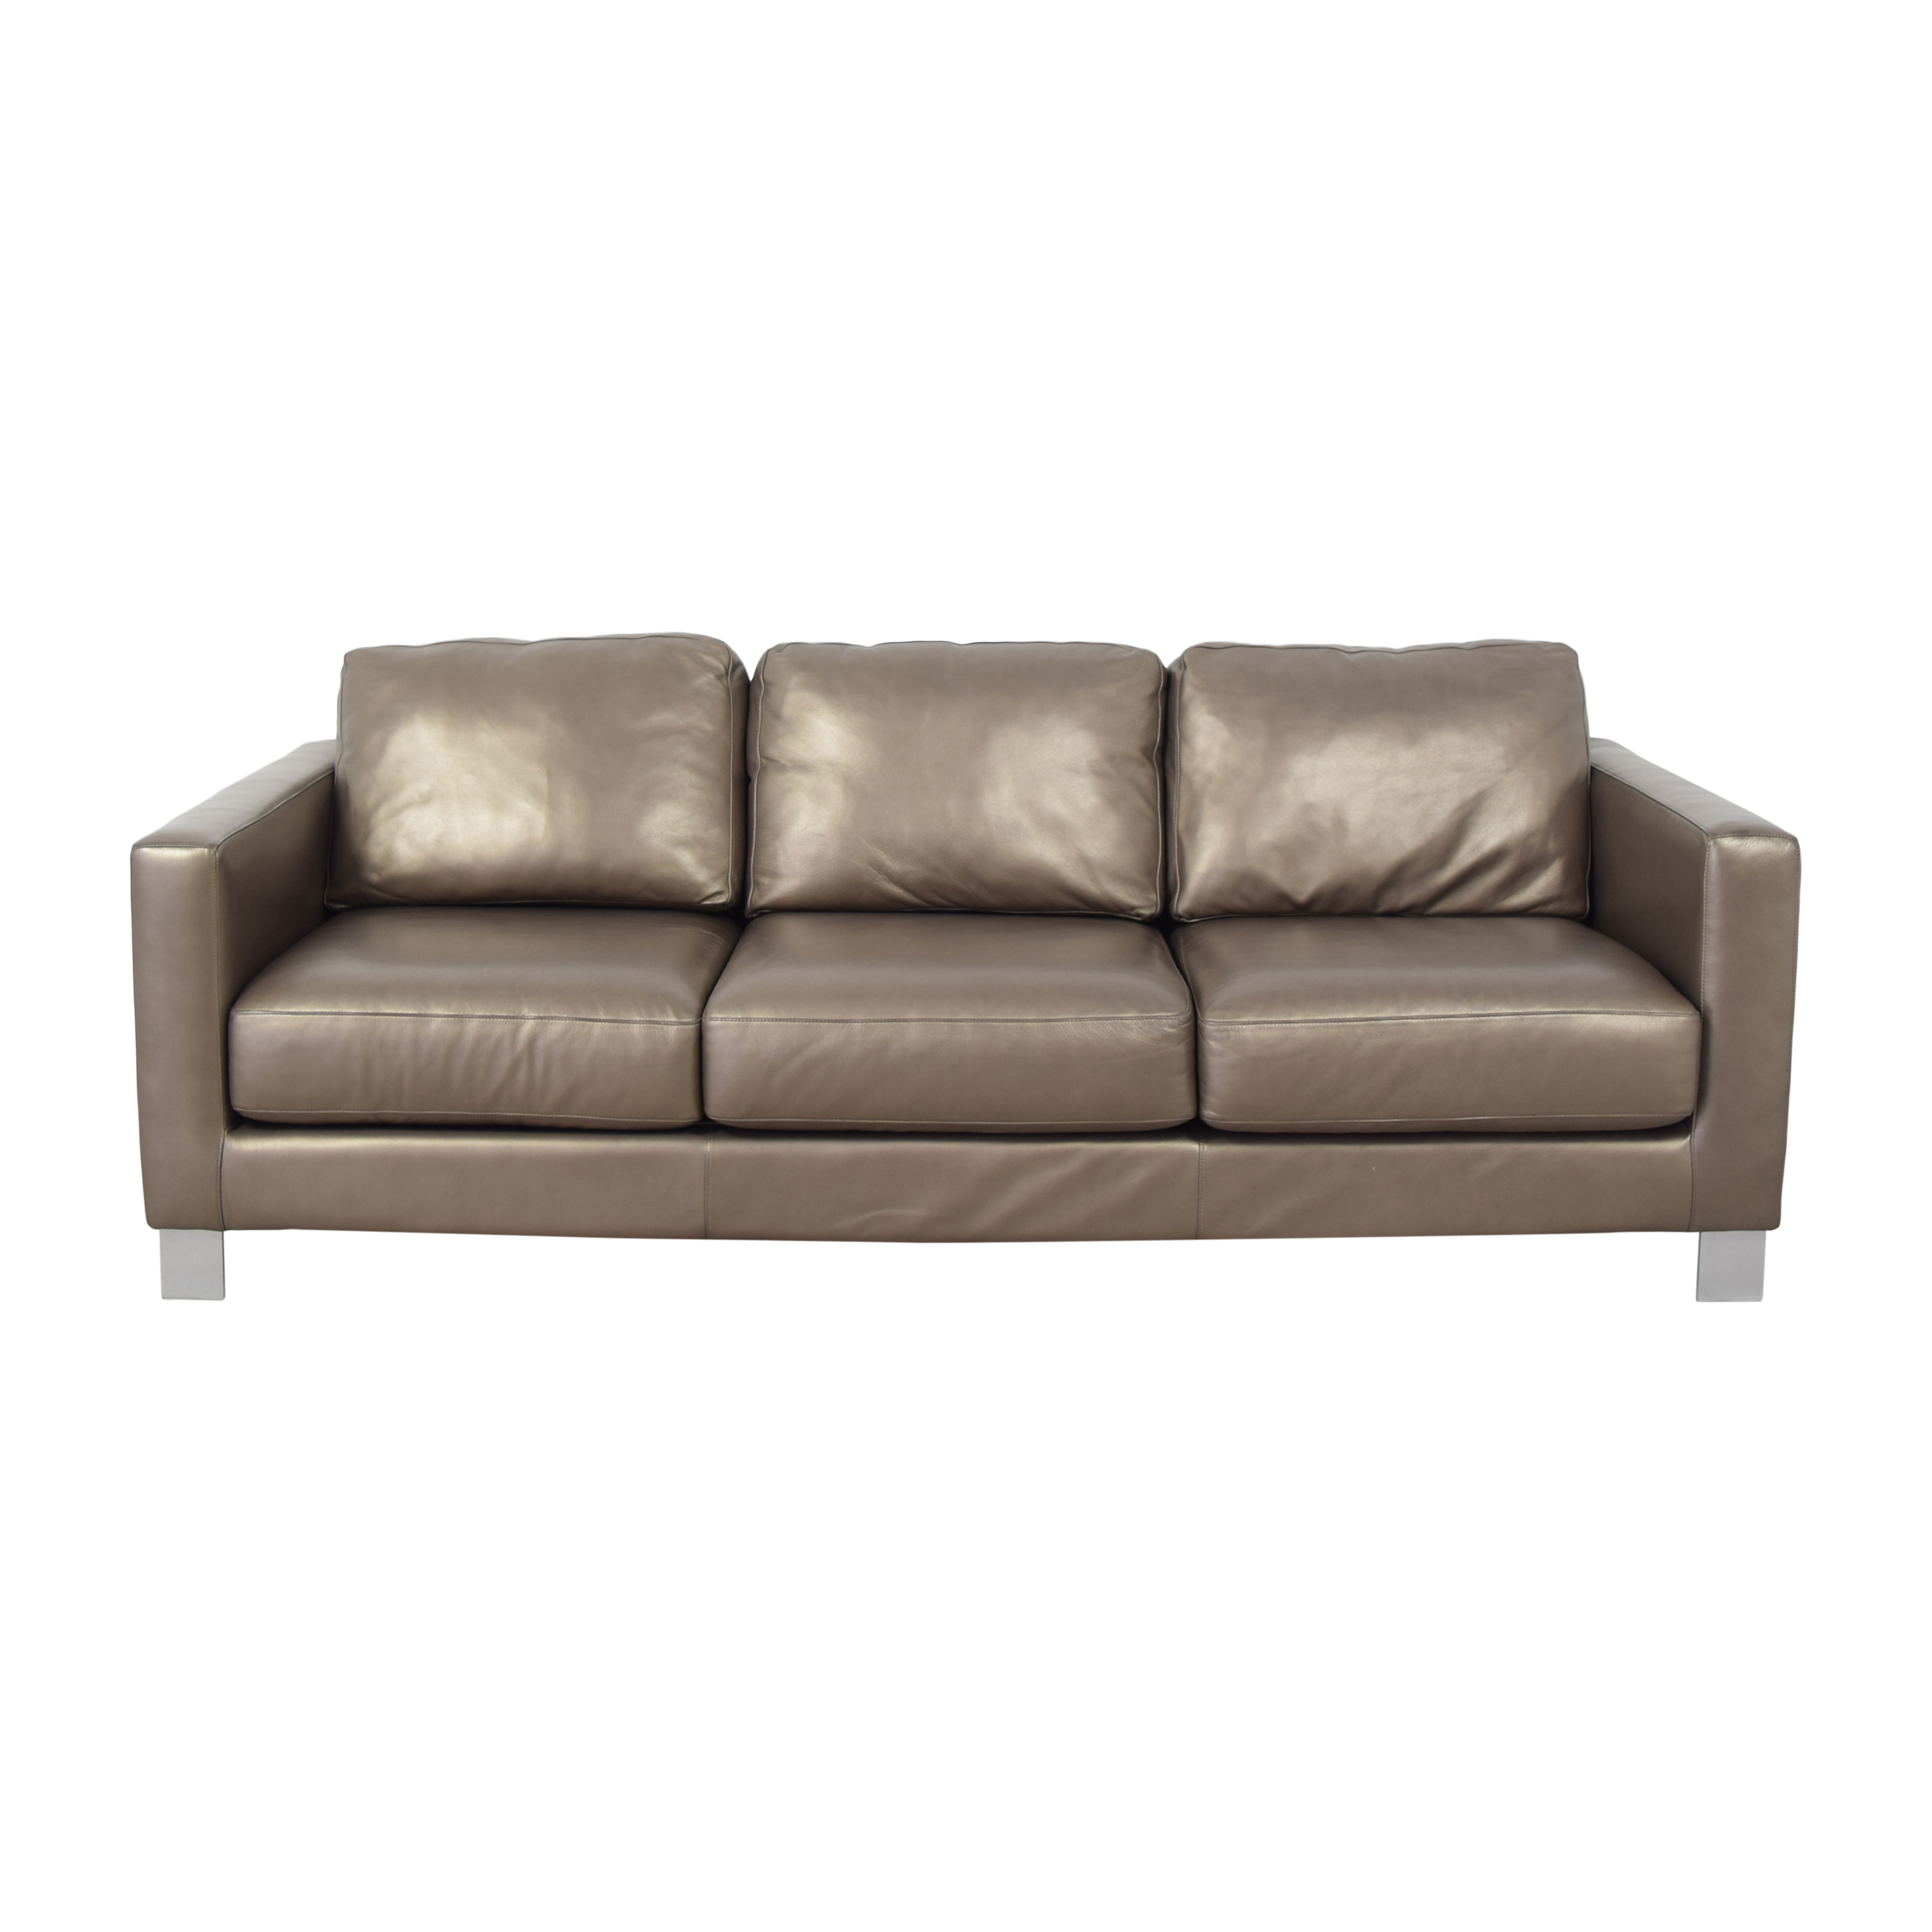 American Leather American Leather Track Arm Sofa on sale